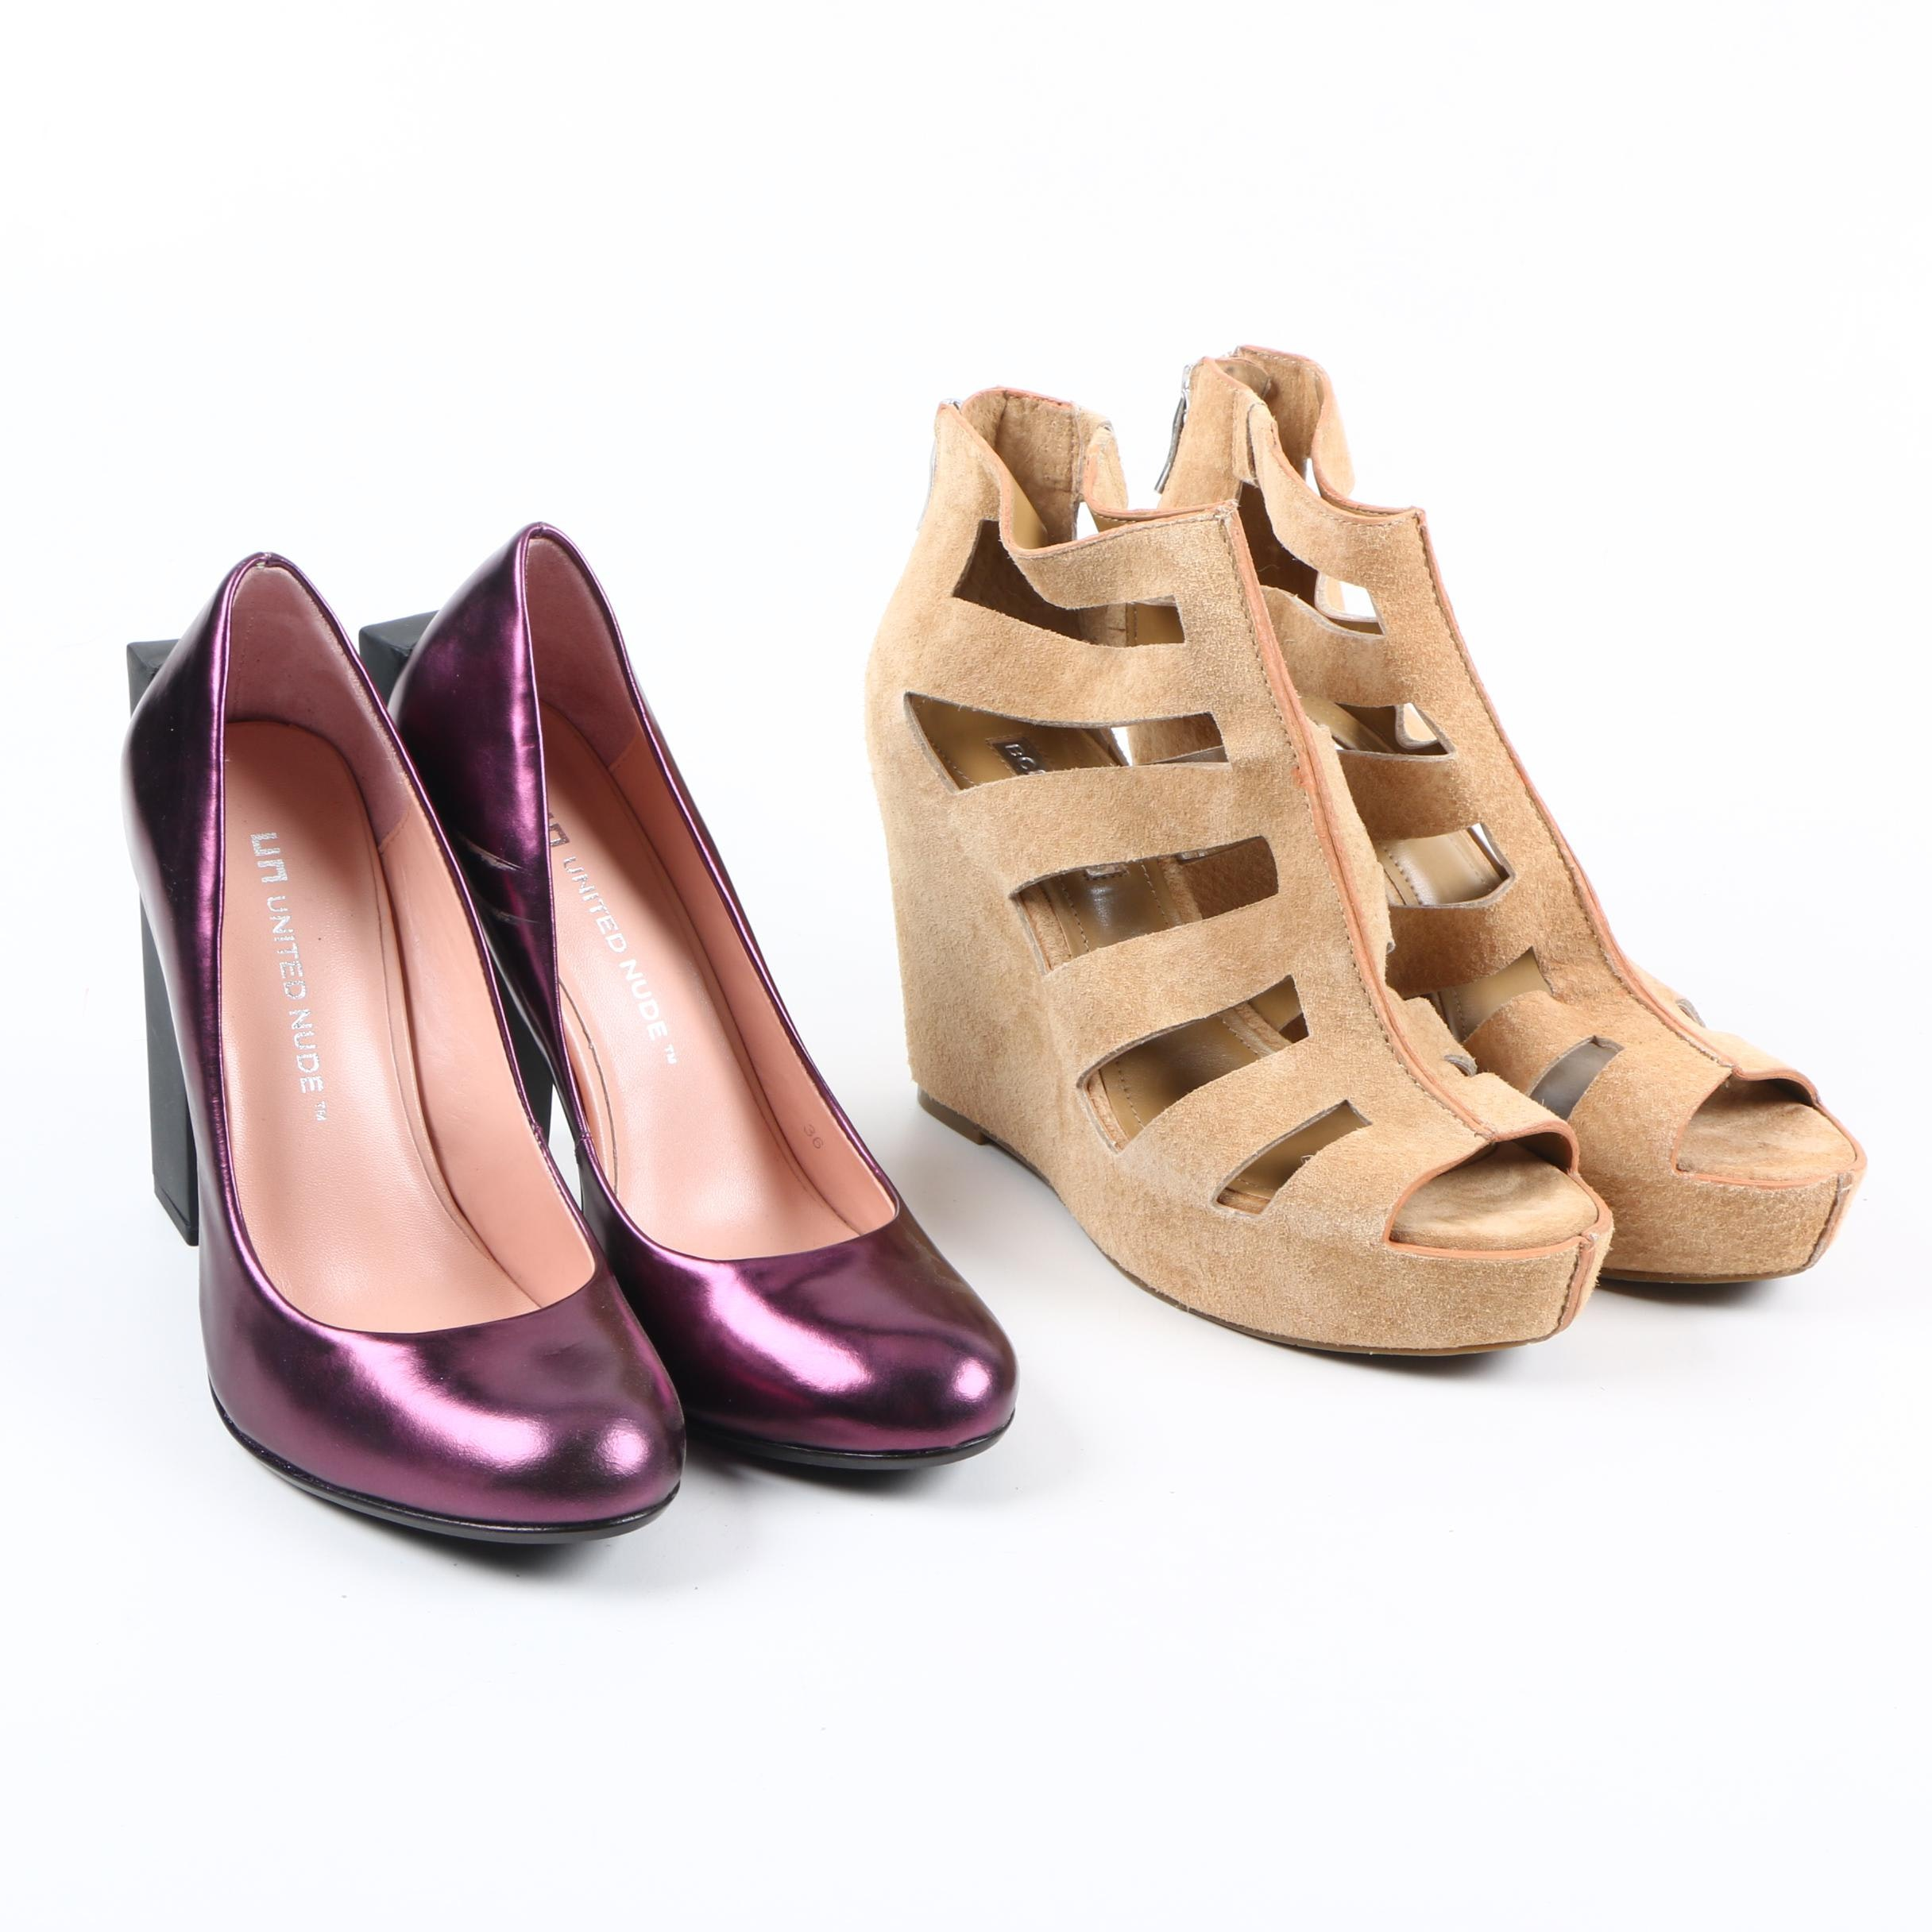 Women's Heels Including United Nude and BCBGeneration